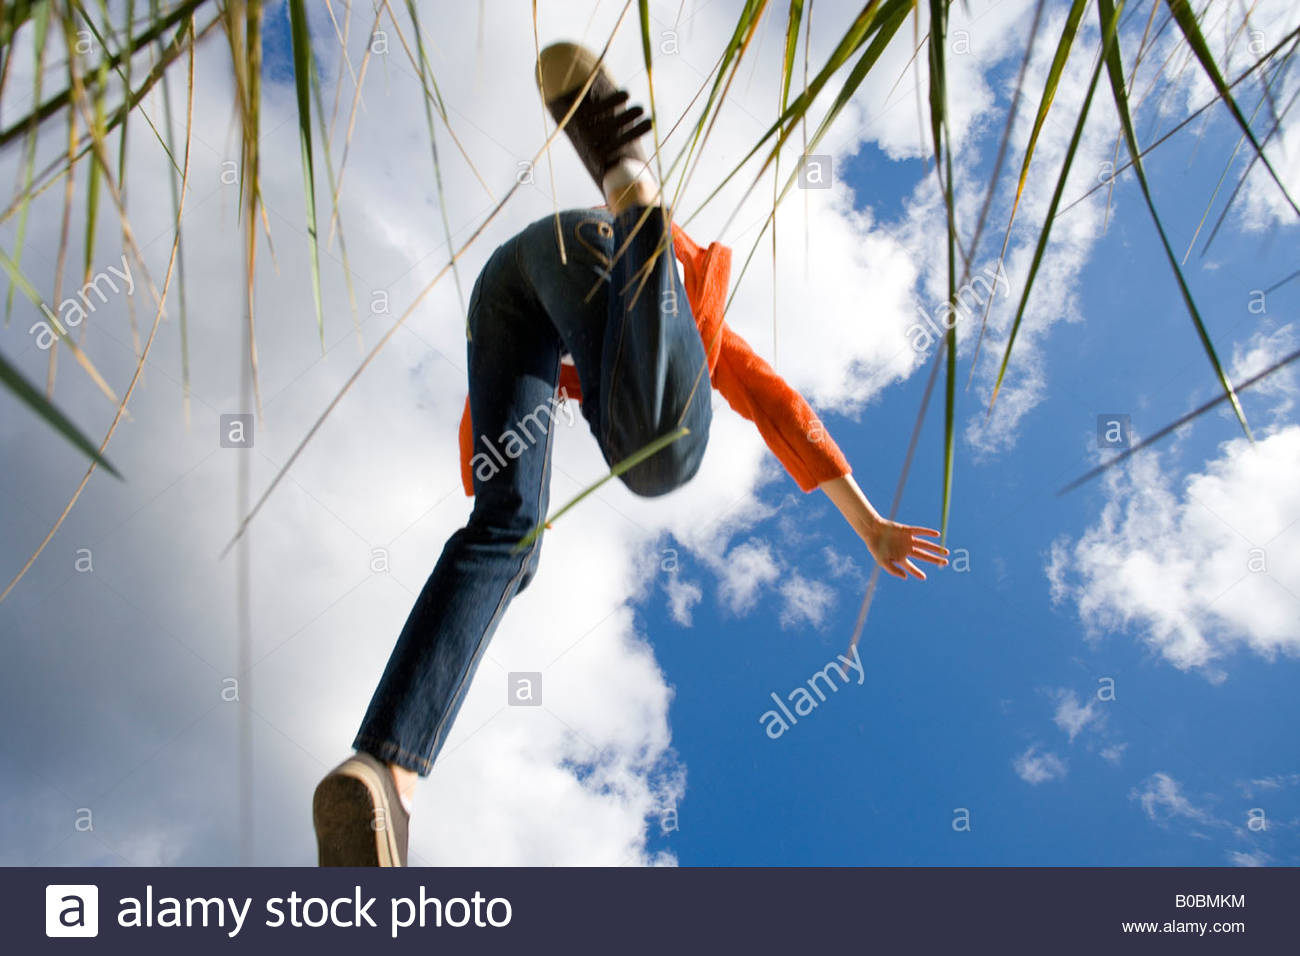 Boy 7-9 years jumping from grass outdoors, view from below - Stock Image